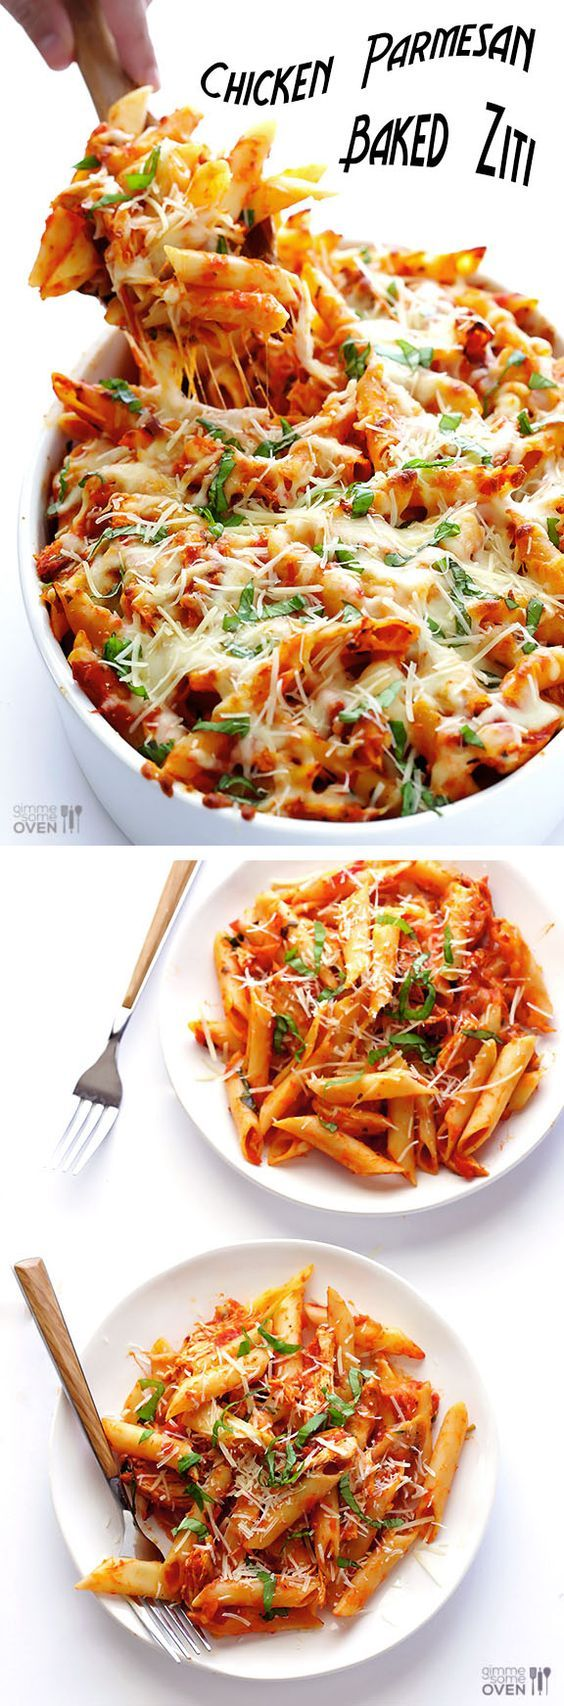 Chicken Parmesan Baked Ziti: This quick recipe mashup only calls for 6 simple ingredients including quite a bit of mozzarella cheese, which makes everything ooey and gooey and wonderful. Ridiculously delicious and comforting!